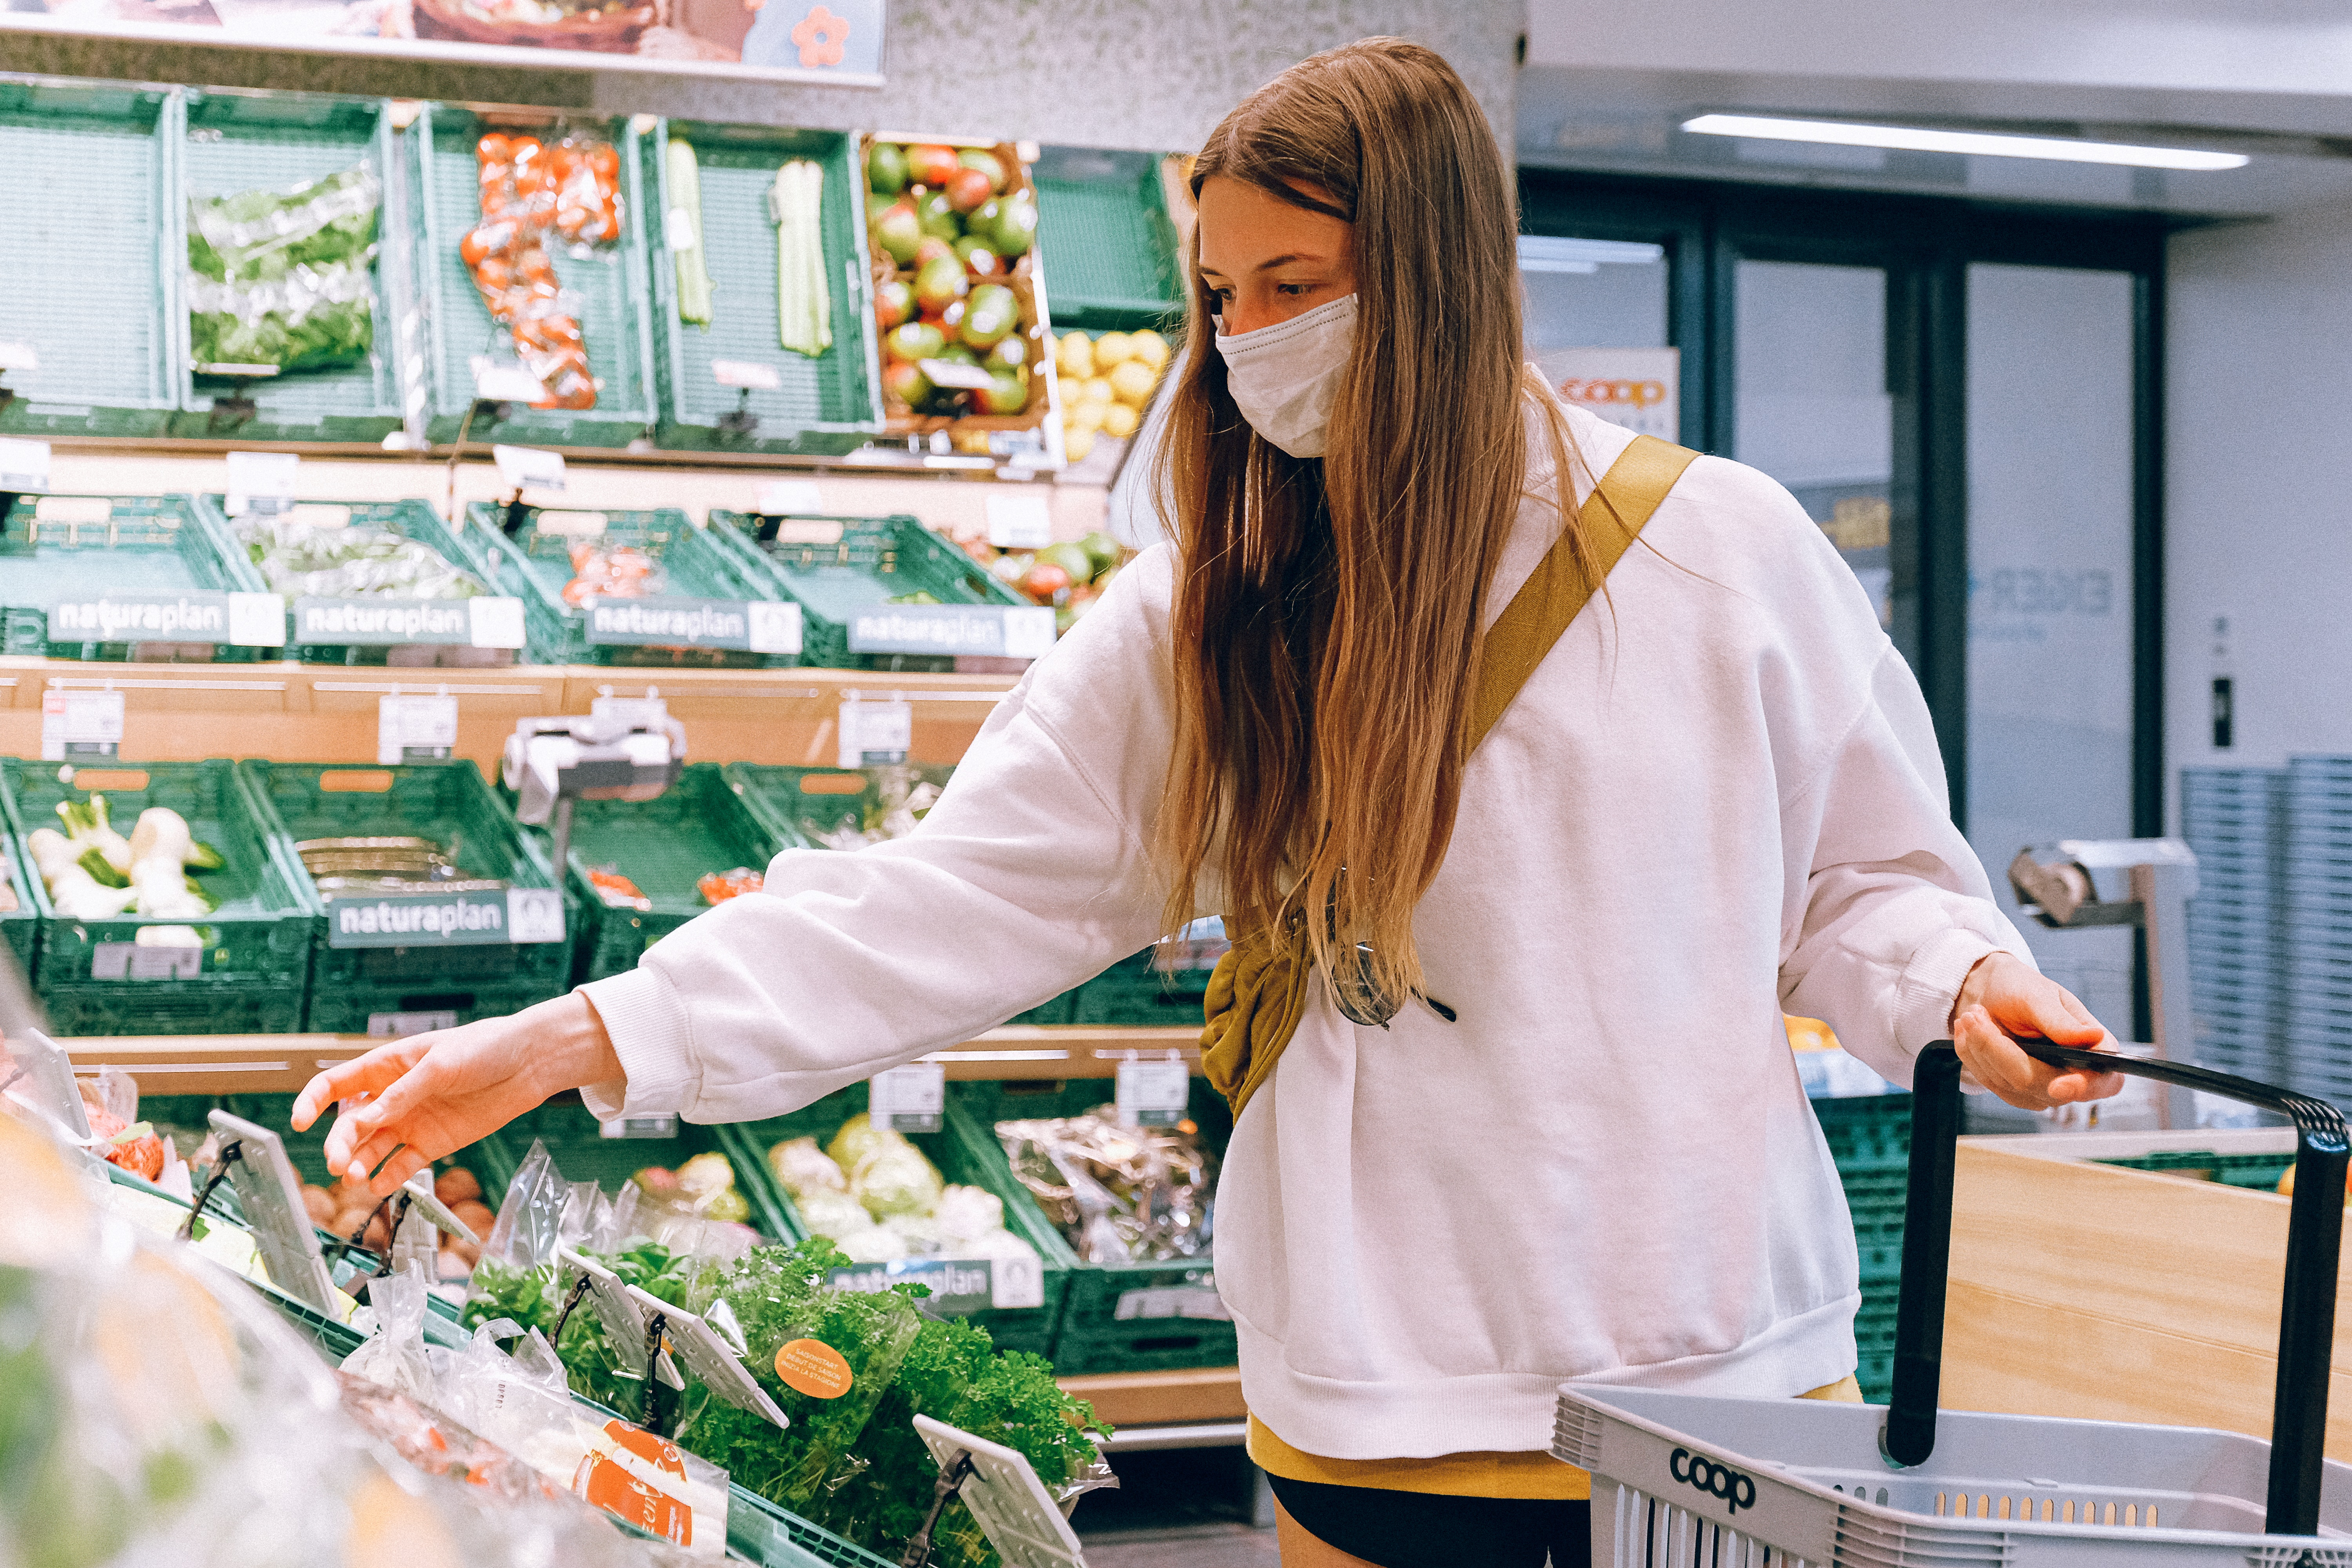 Women in white shirt and mask shopping at grocery store